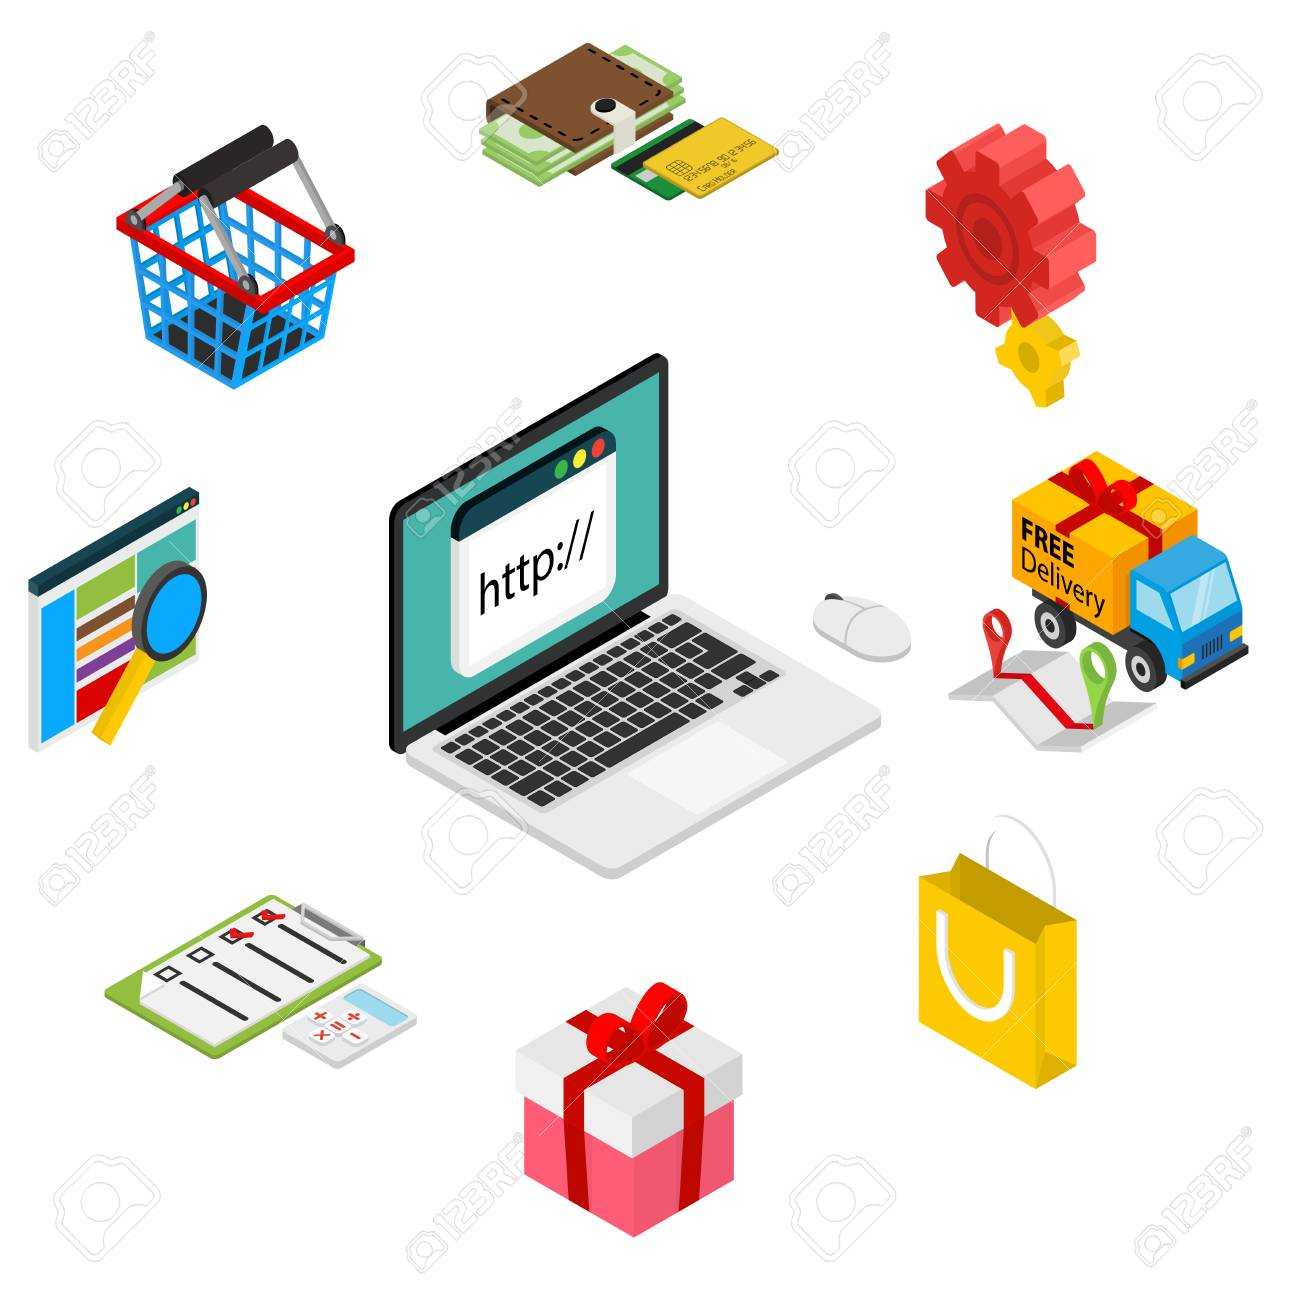 Isometric illustration of online shopping with laptop and icons - isolated on white - 43433463